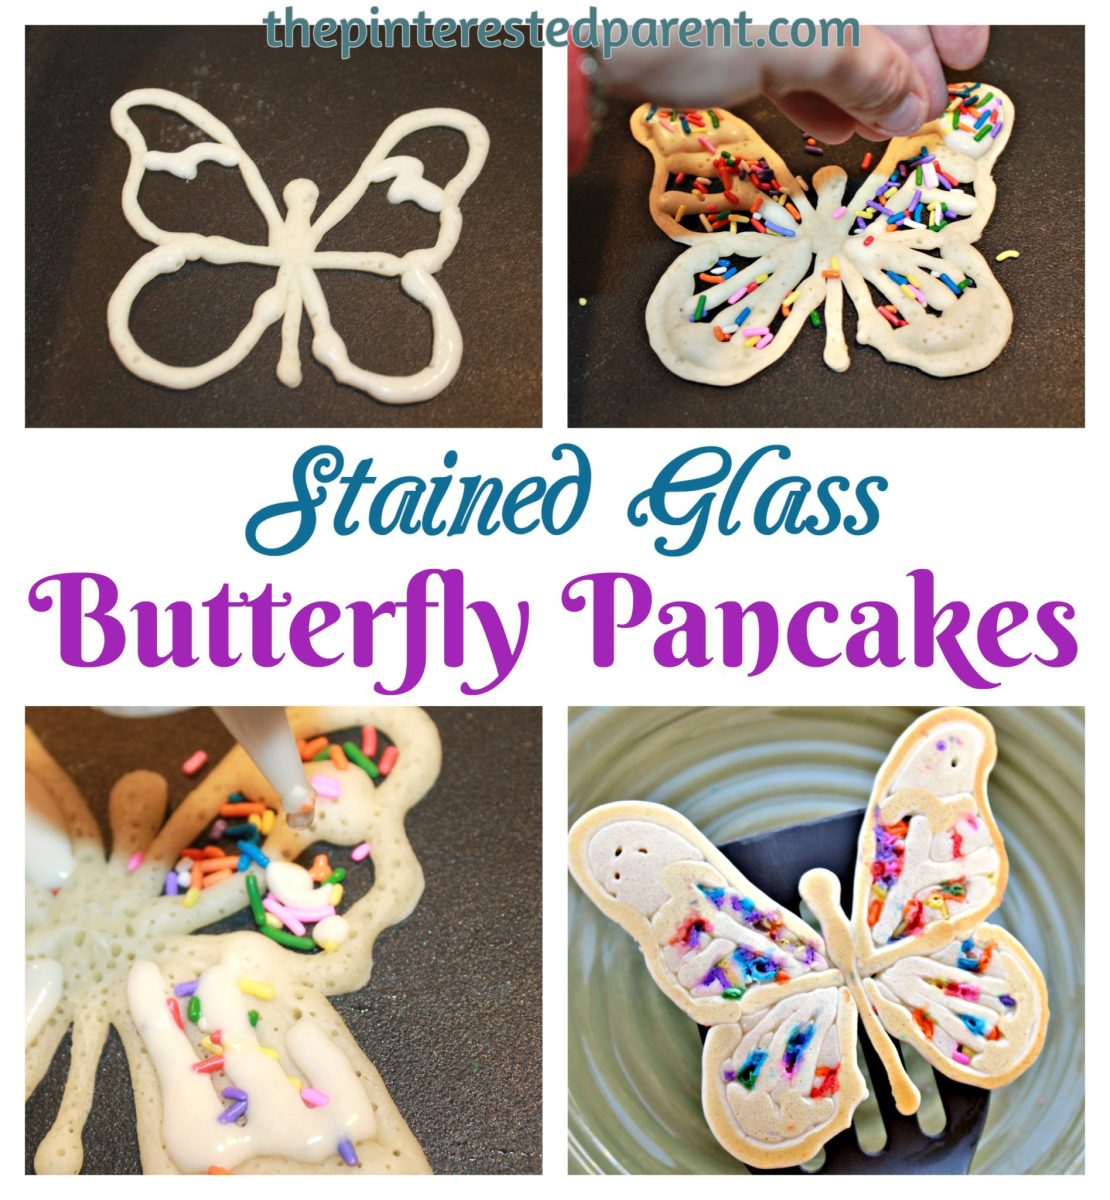 Stained Glass Butterfly Pancakes